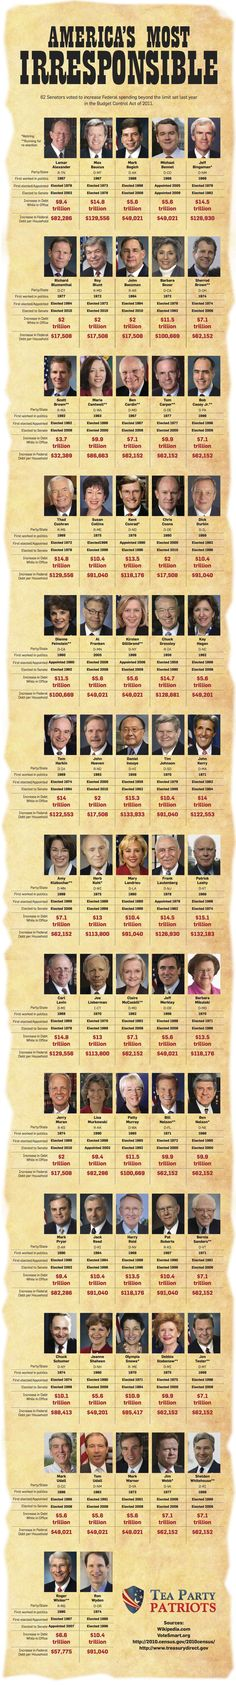 62 Senators voted to increase Federal spending beyond the limit set last year in the Budget Control Act of 2011.